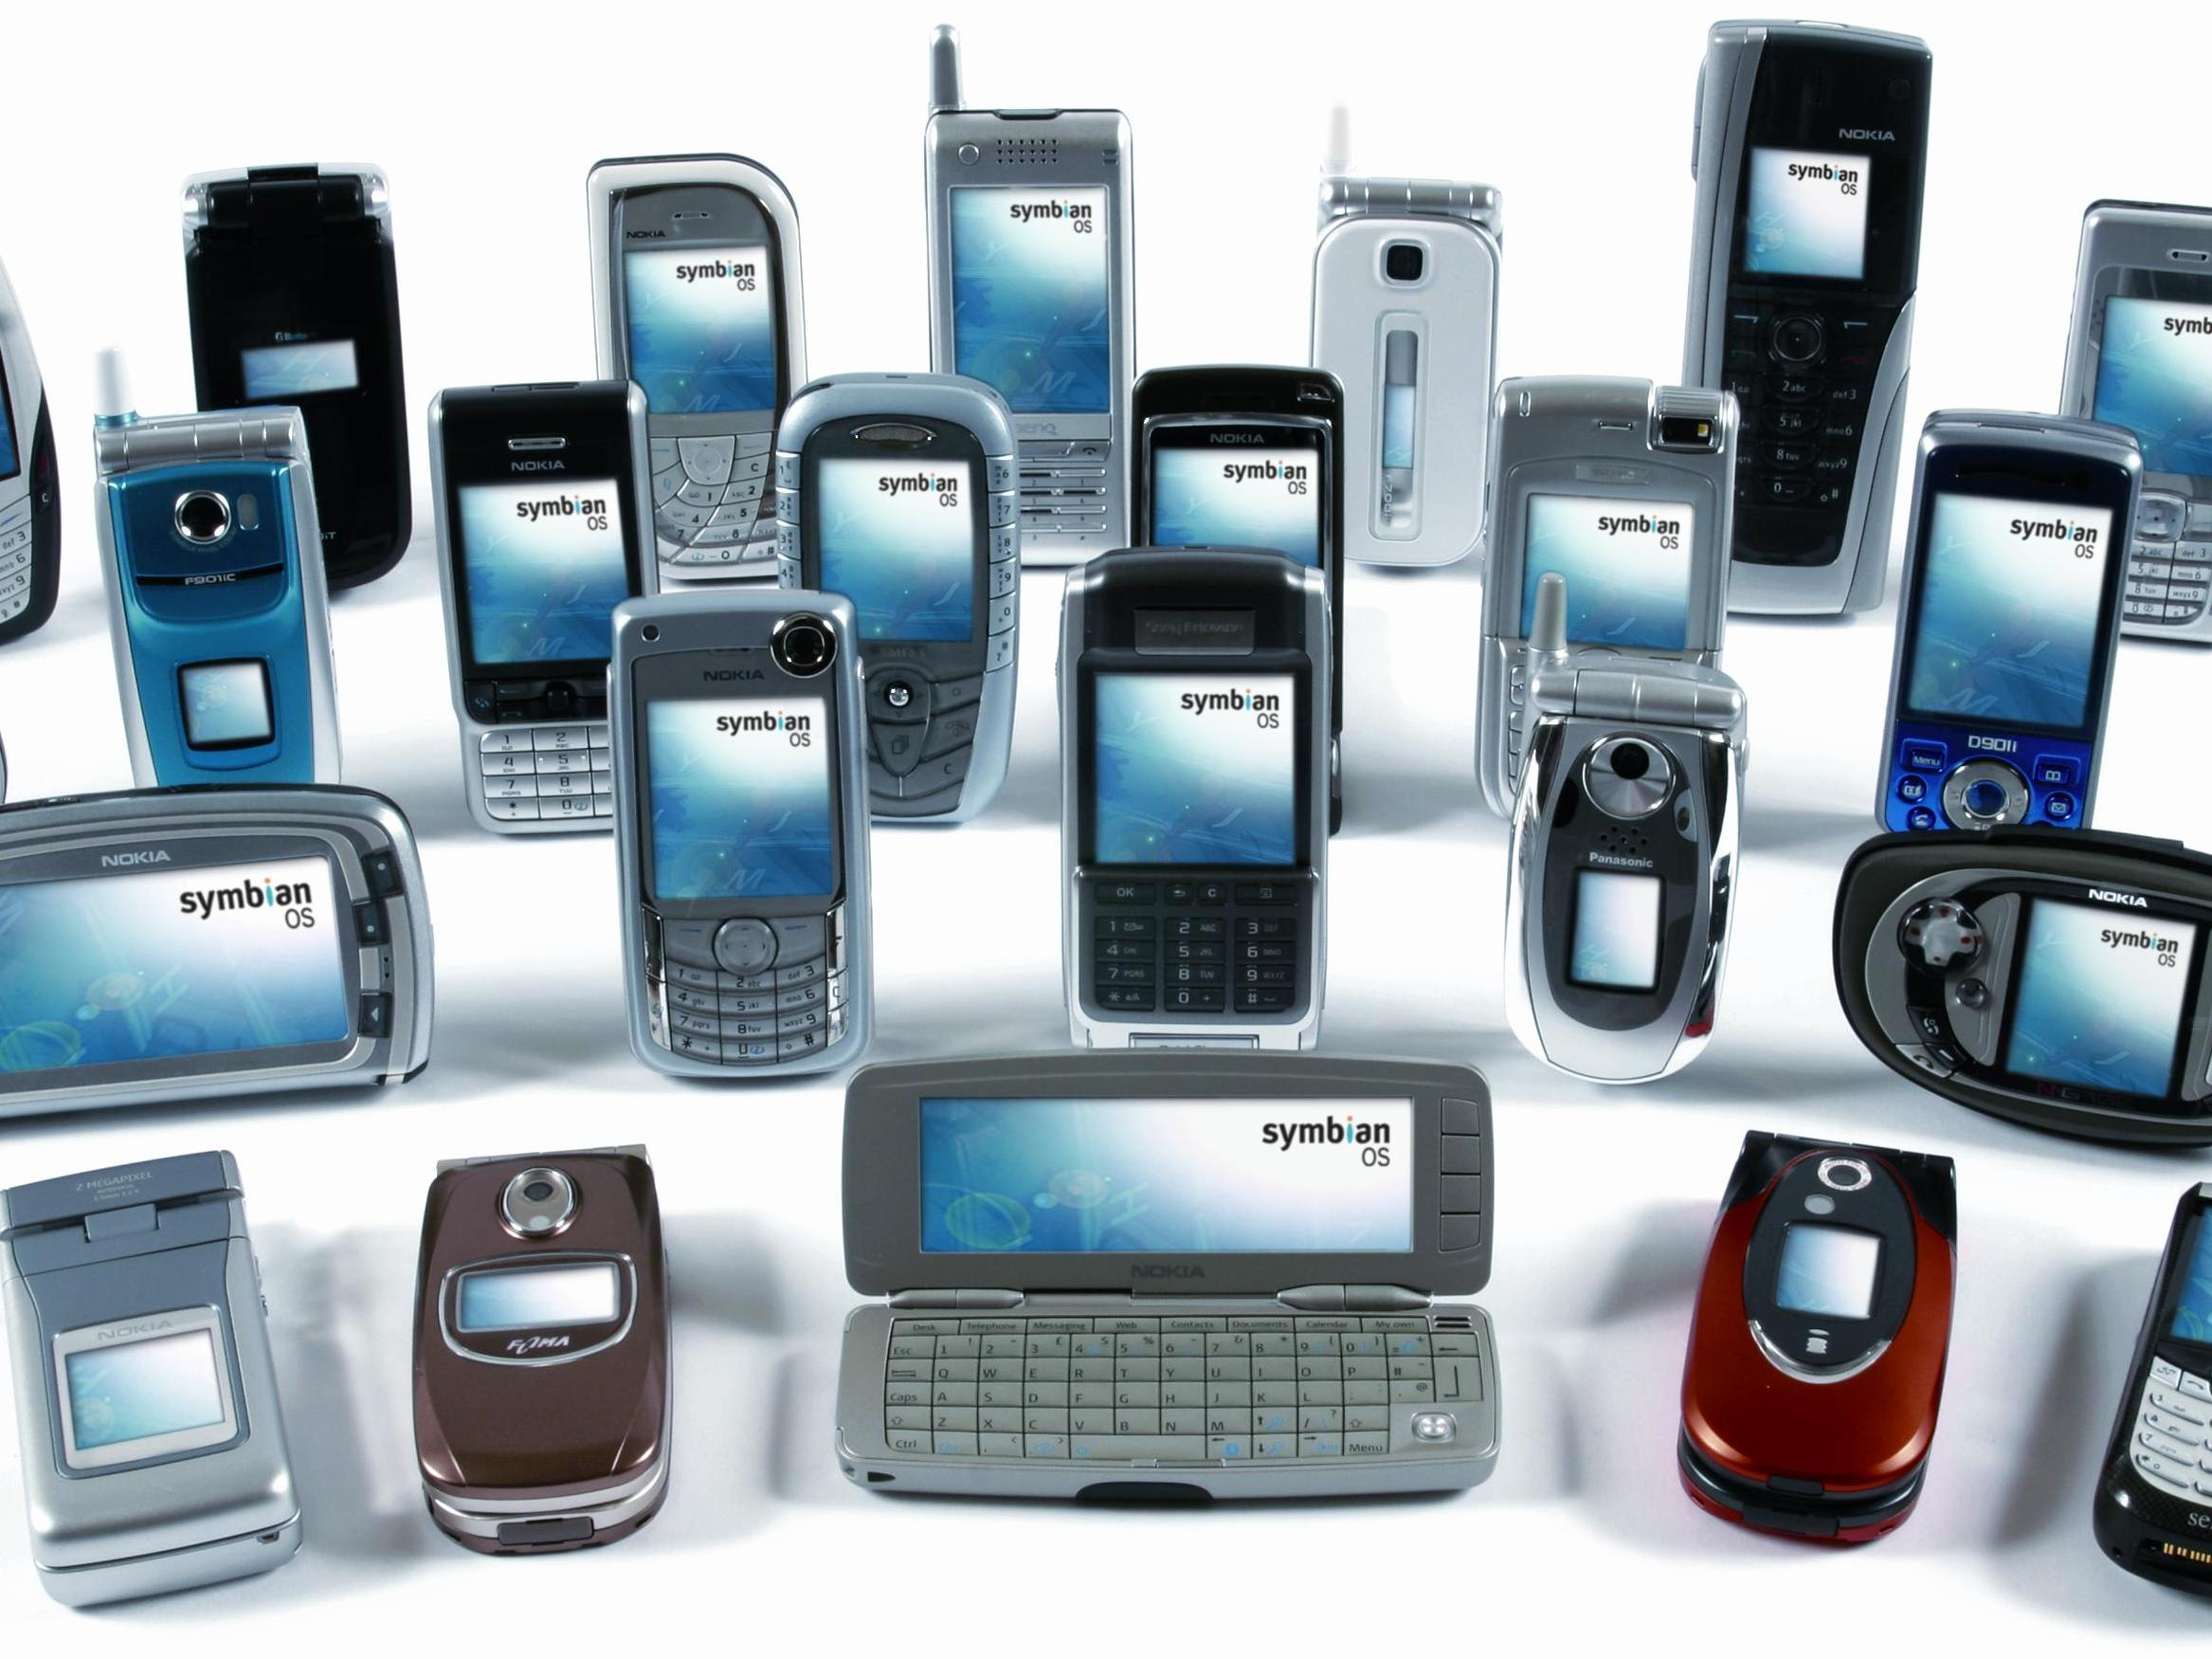 OS for Symbian OS phones 15